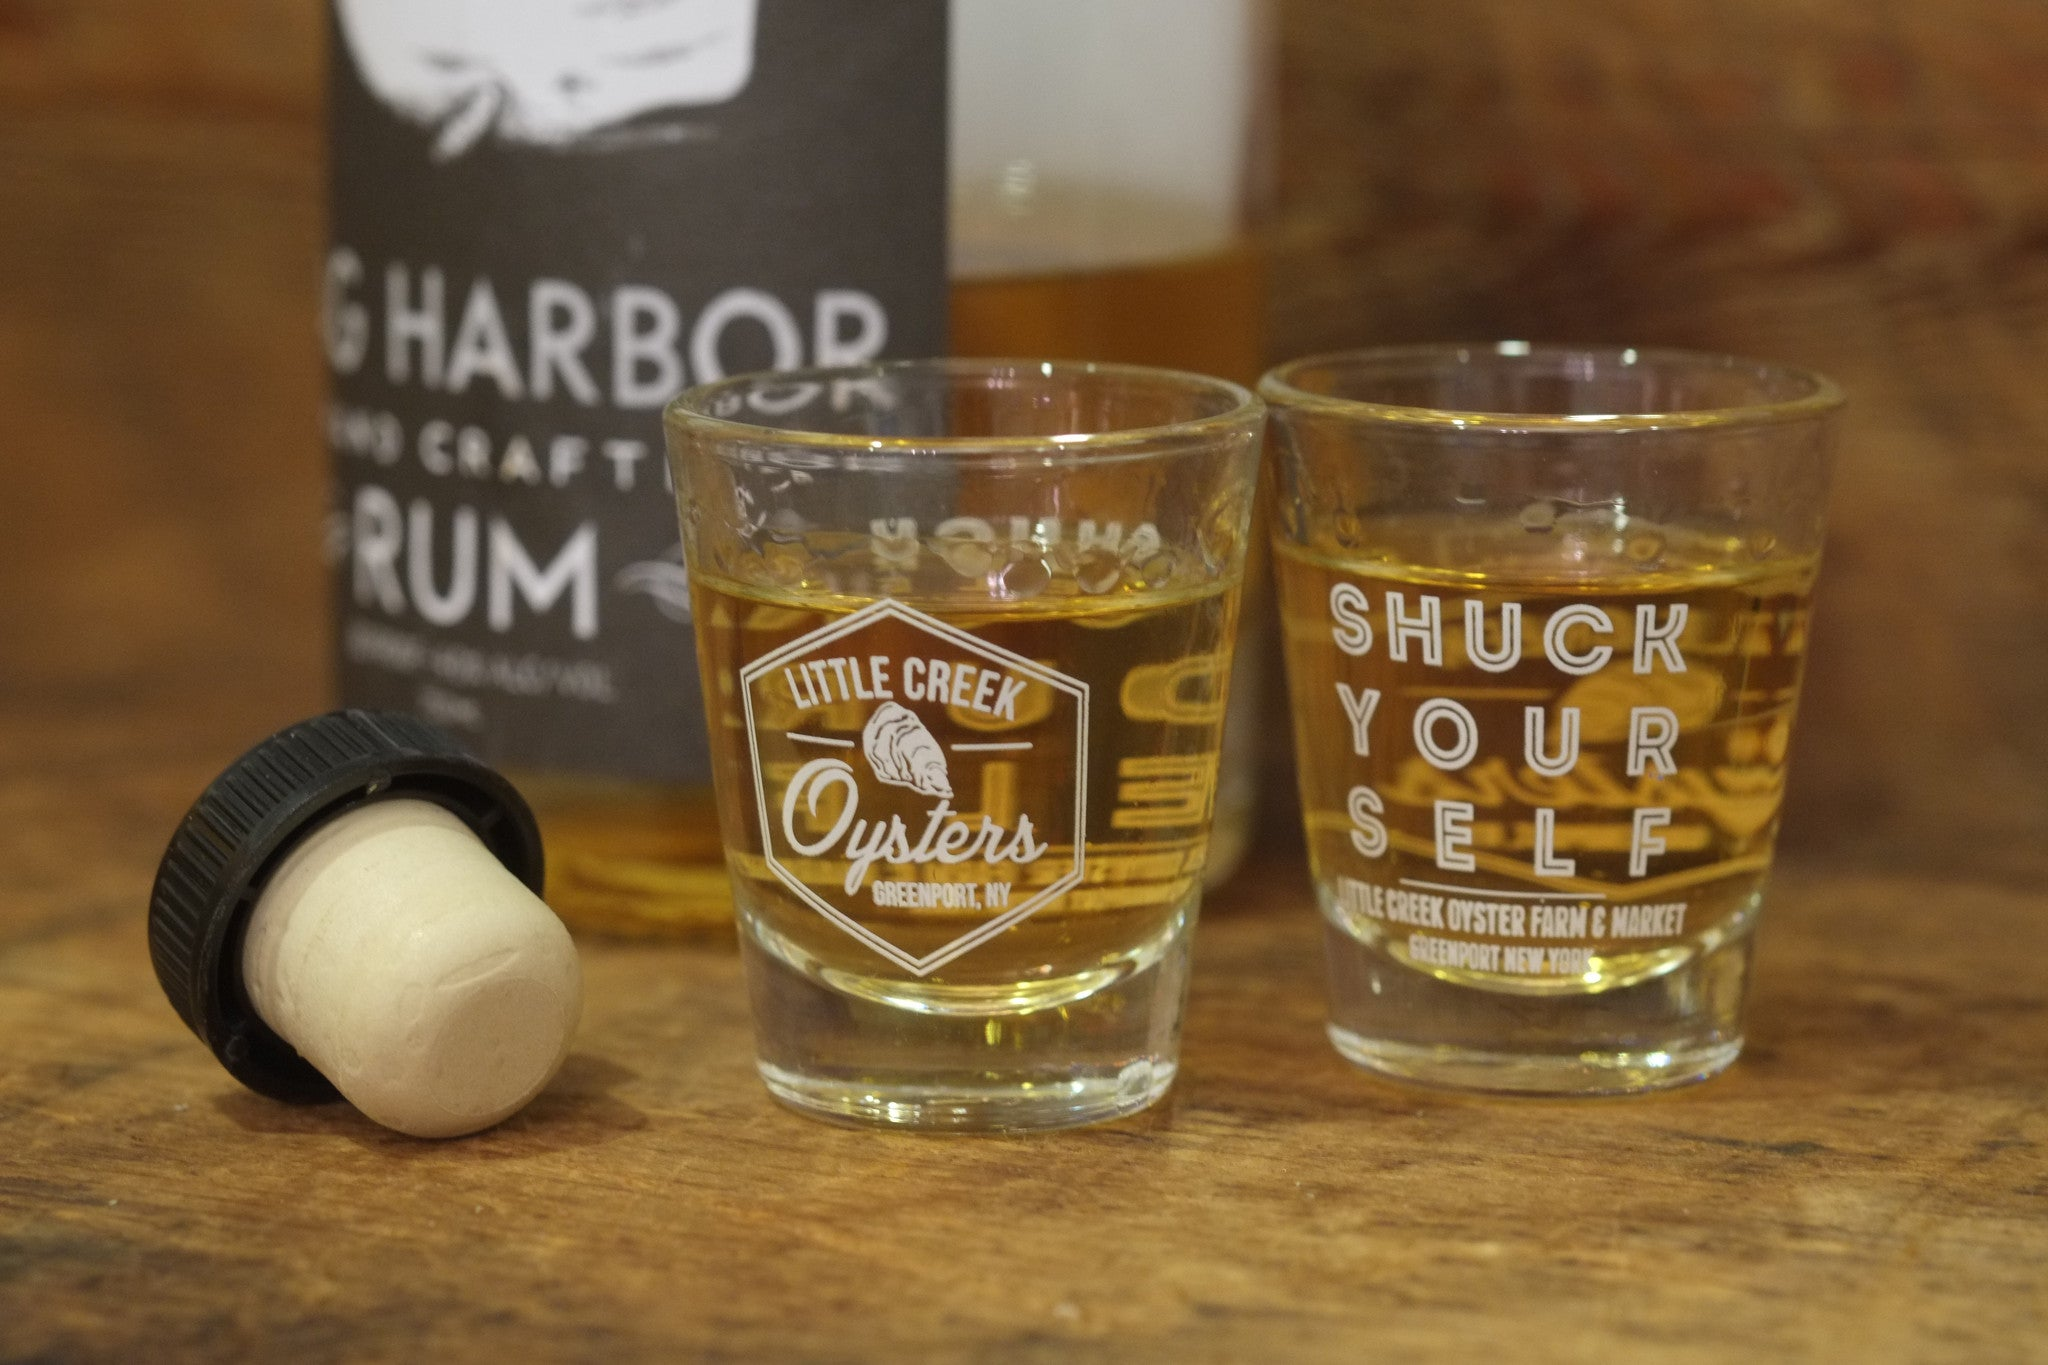 Little Creek Oyster's Shot Glass - LITTLE CREEK OYSTER FARM & MARKET